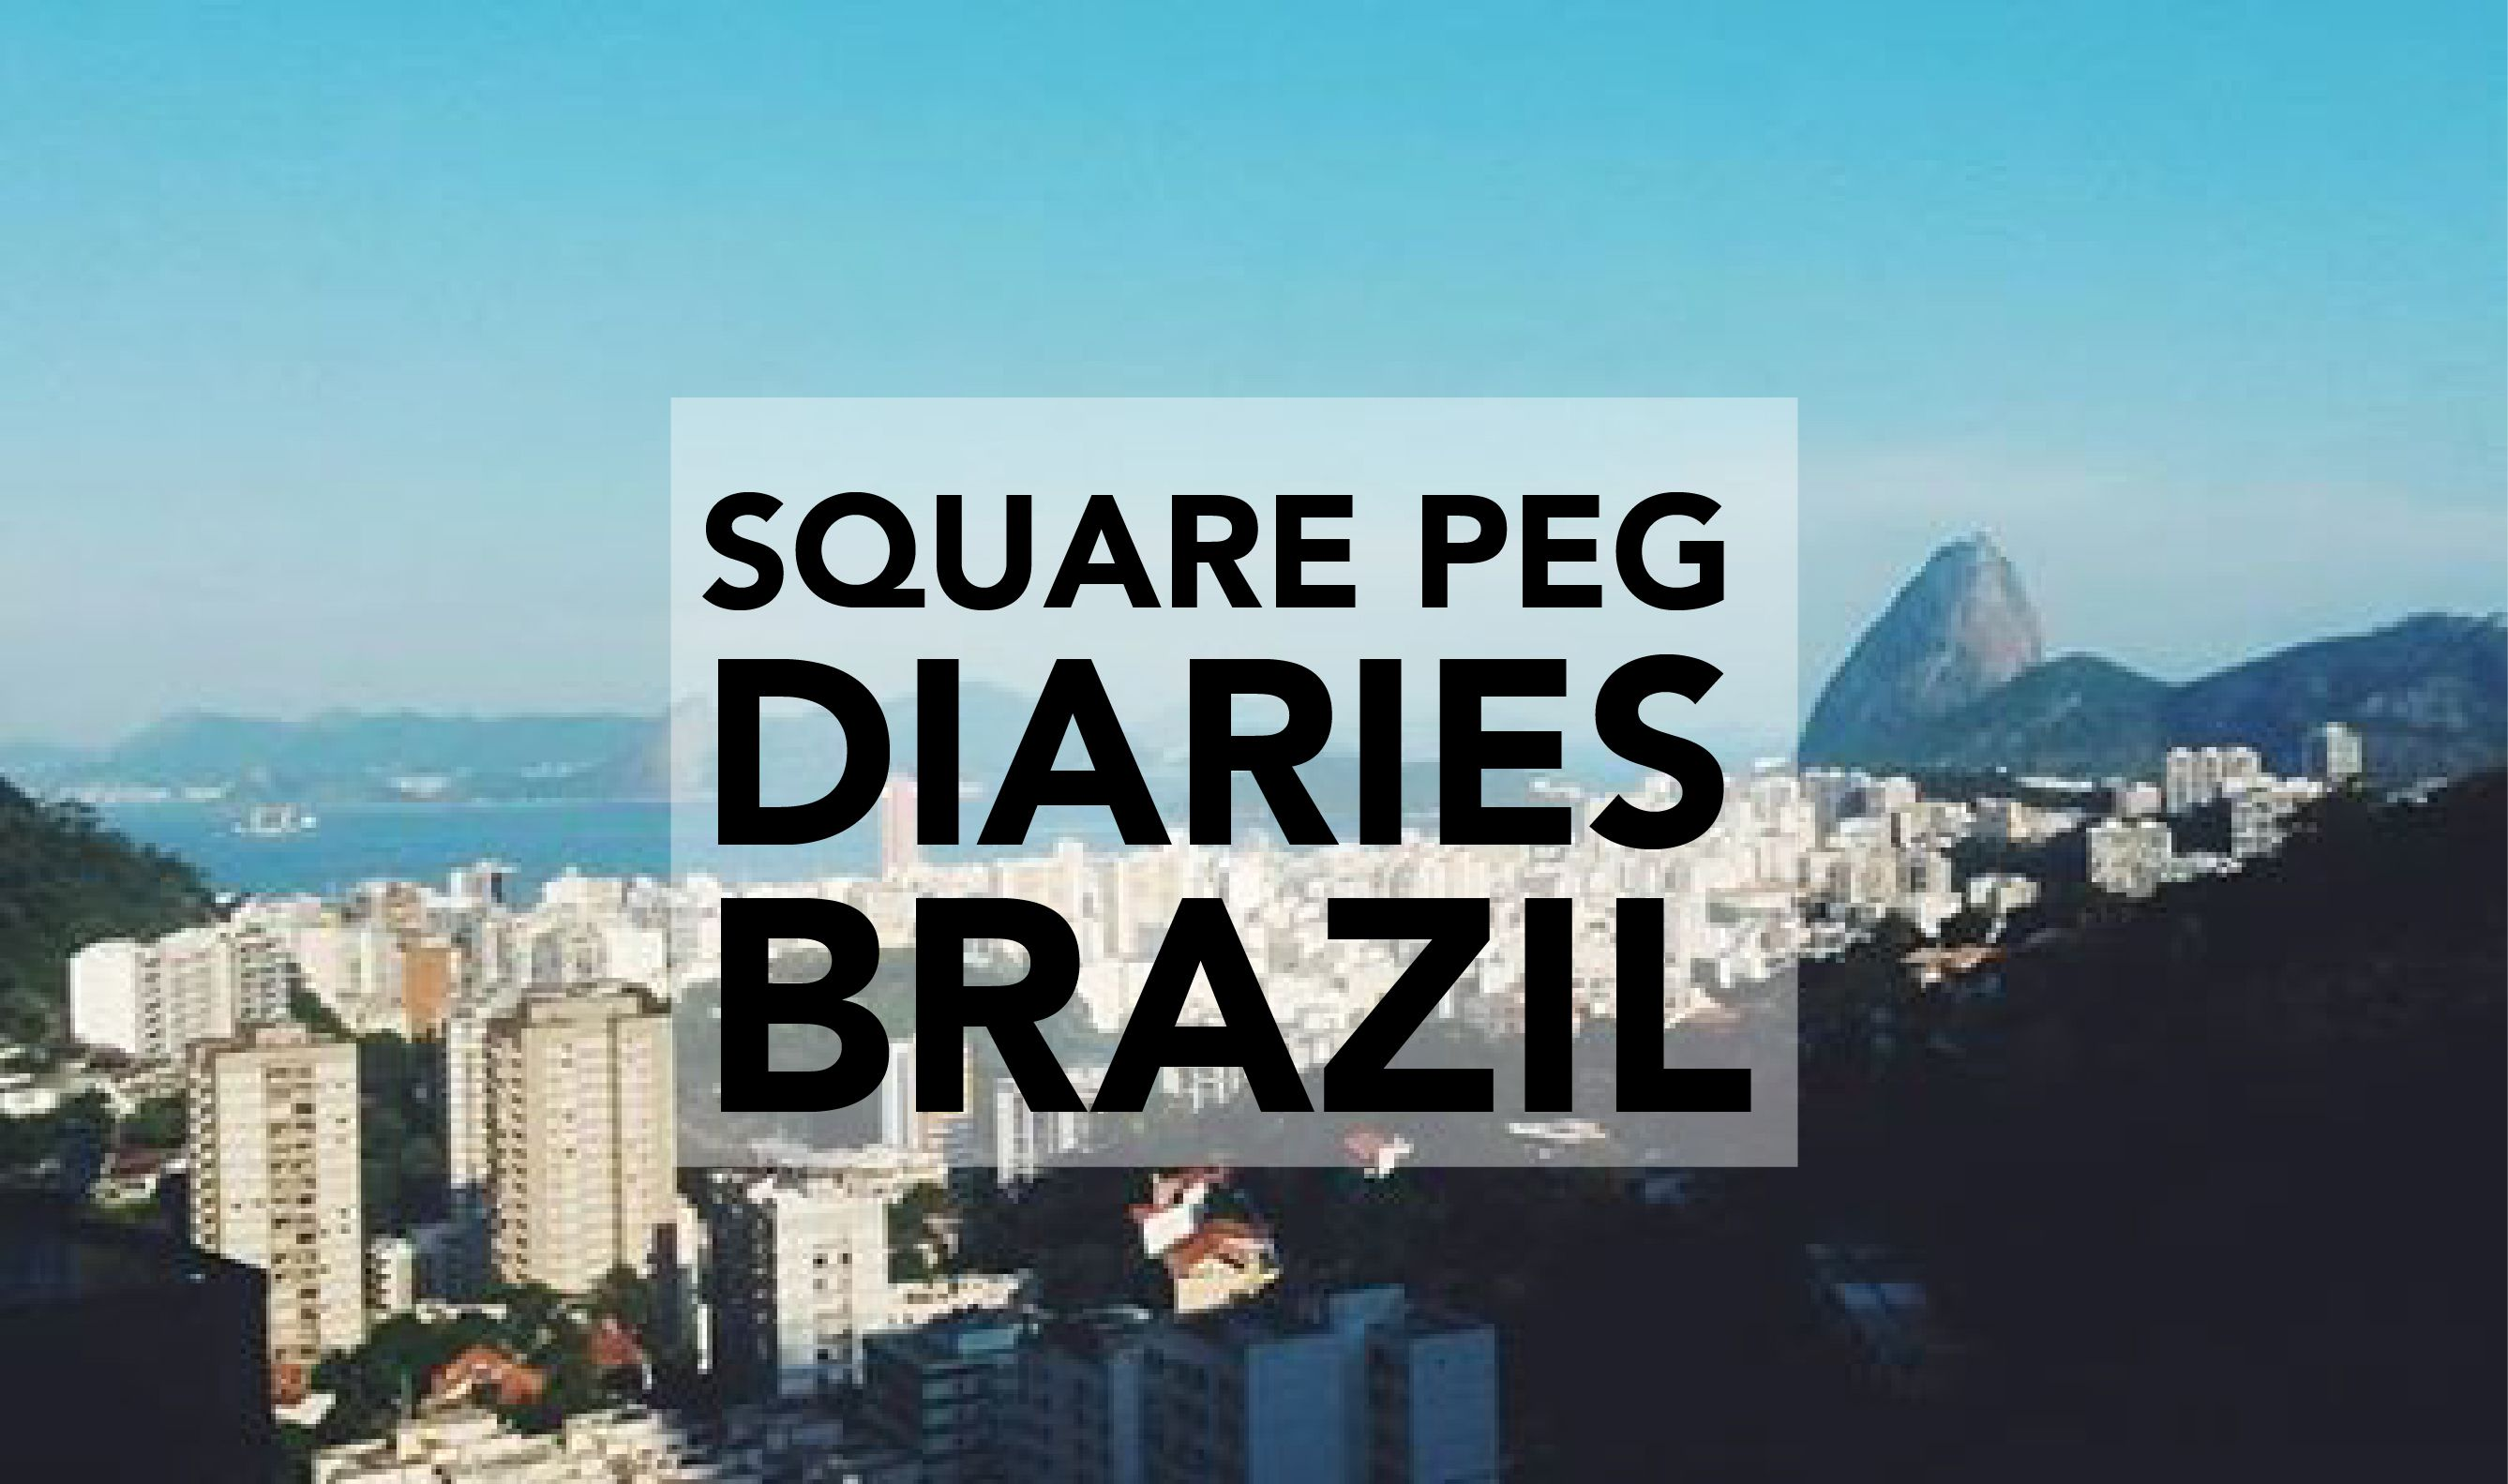 SQUARE PEG DIARIES BRAZIL